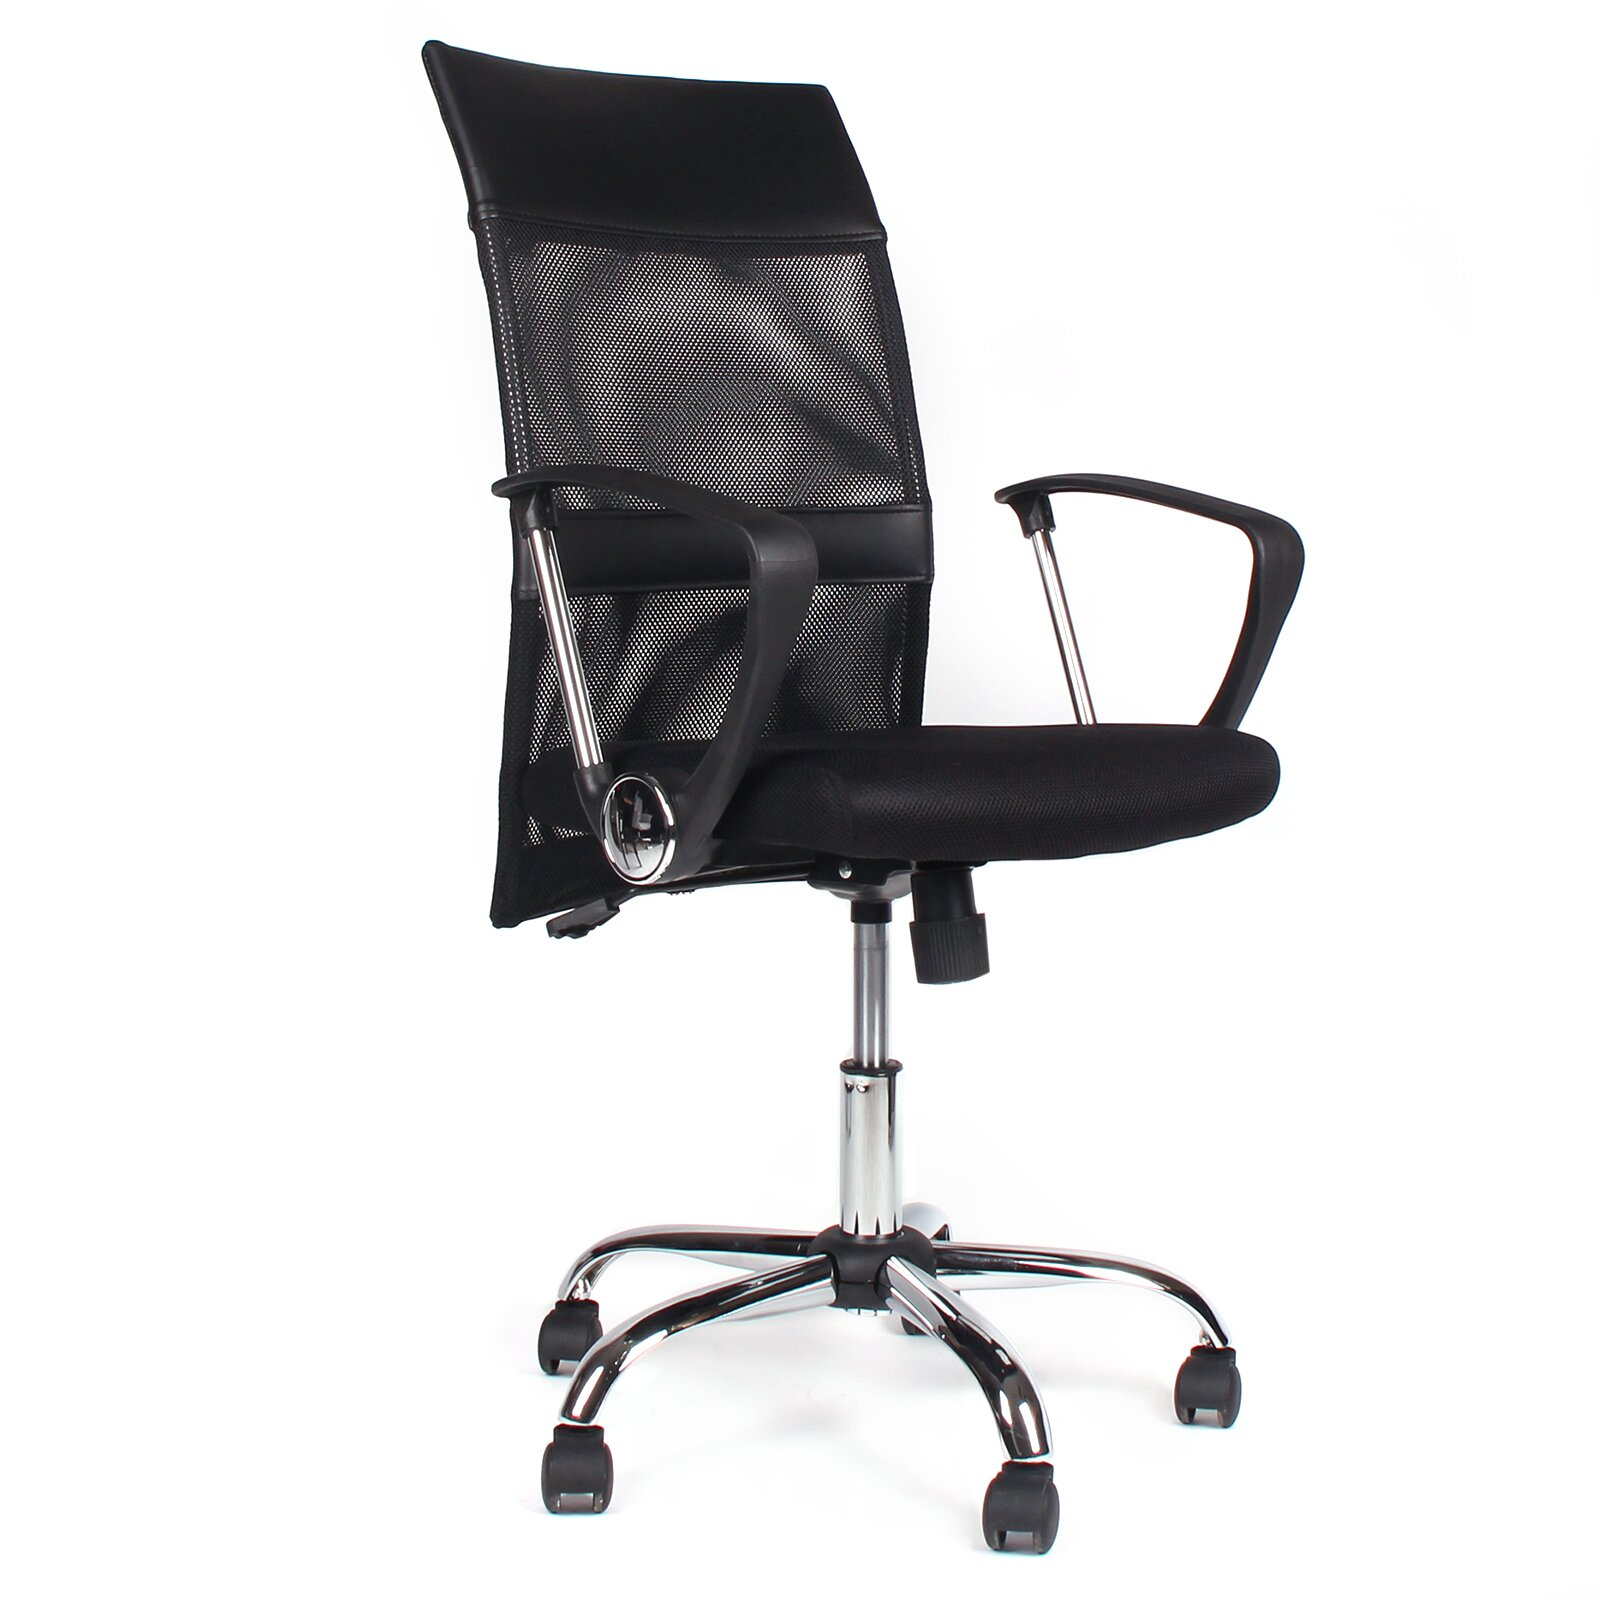 Furniture Office Furniture All Office Chairs MISTERCHAIRS SKU